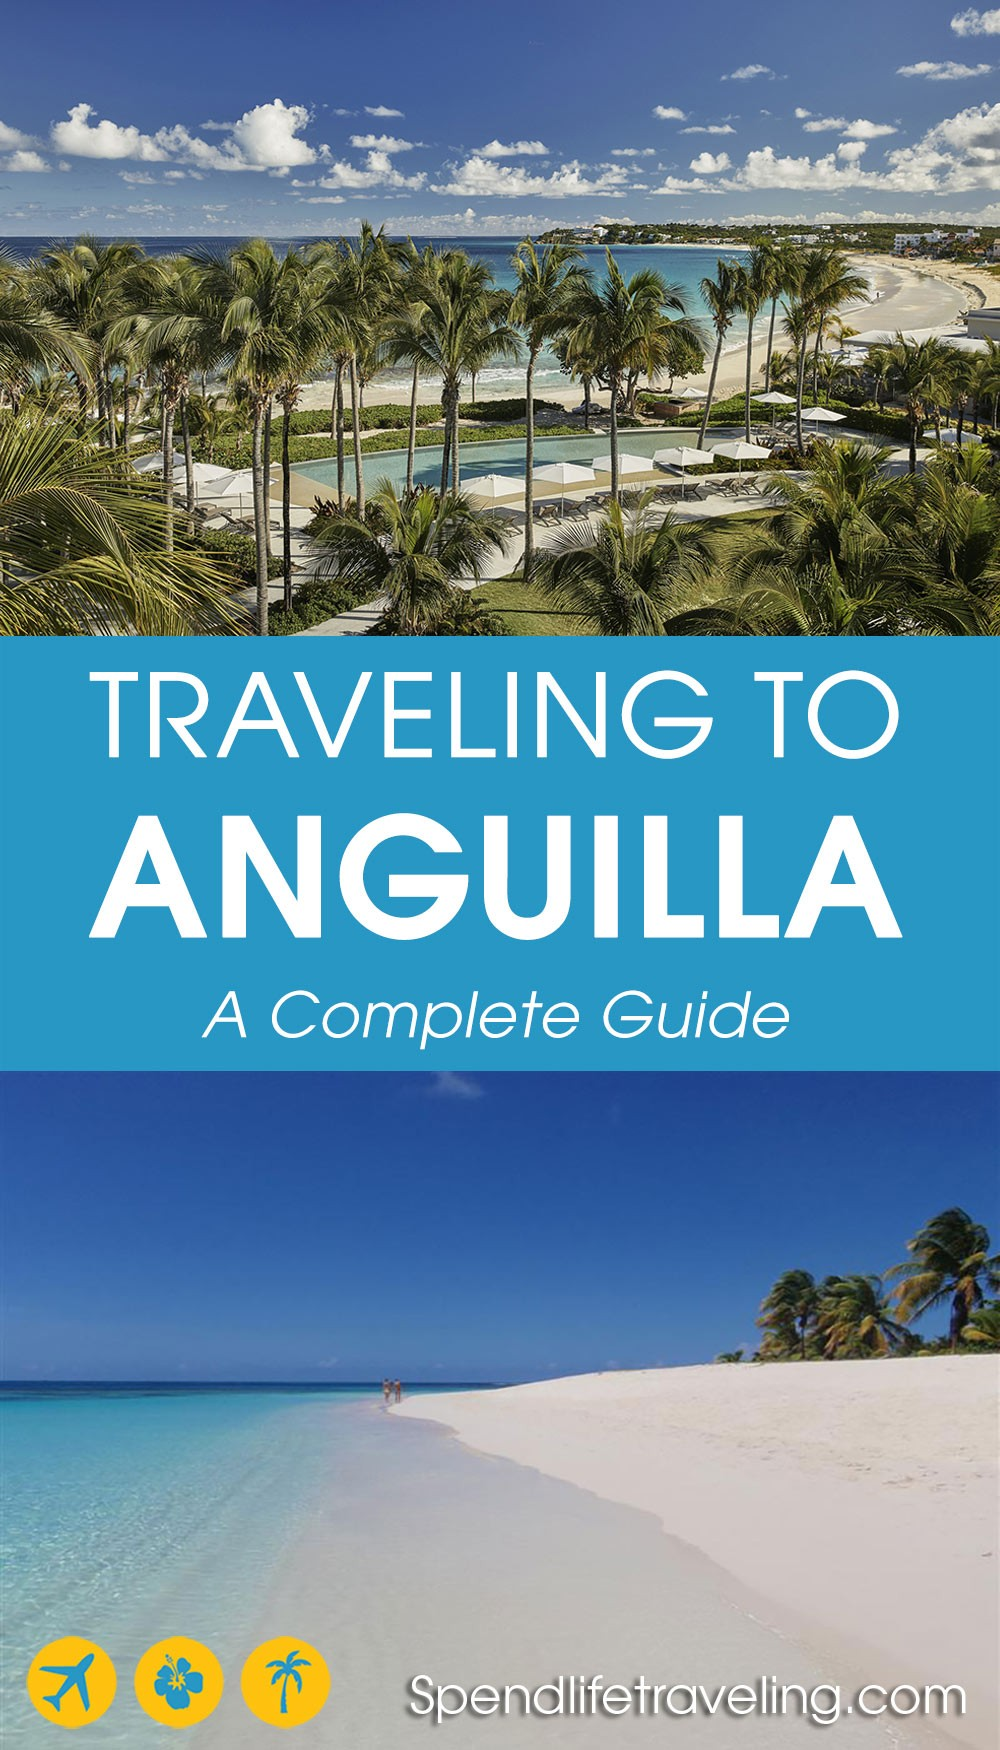 a guide for traveling to Anguilla